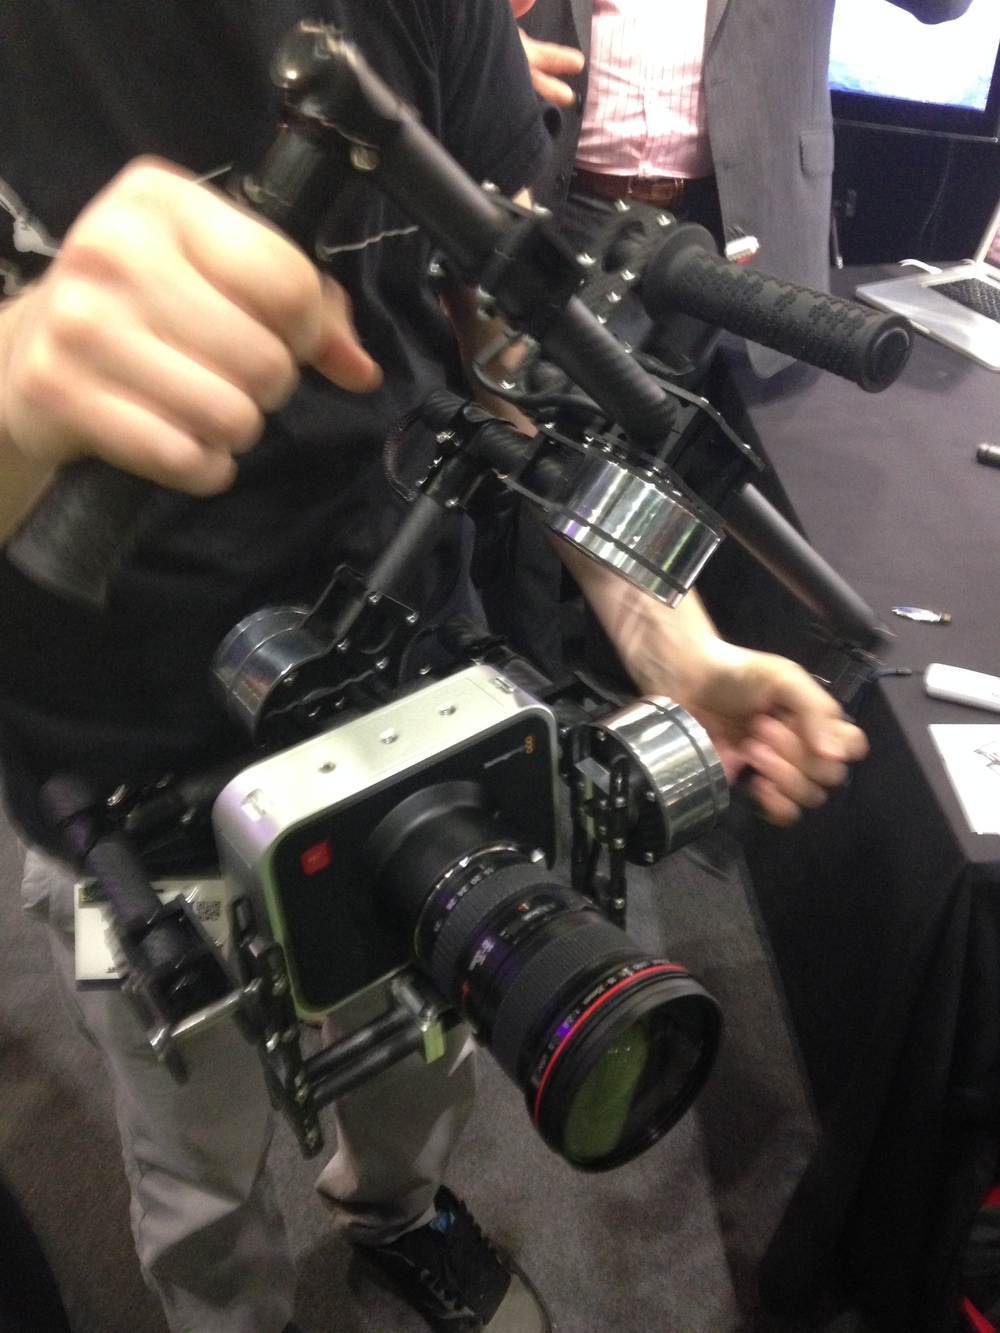 An example of a crappy Chinese gimbal being sold as something special. Notice the added shiny motor shrouds... classy.